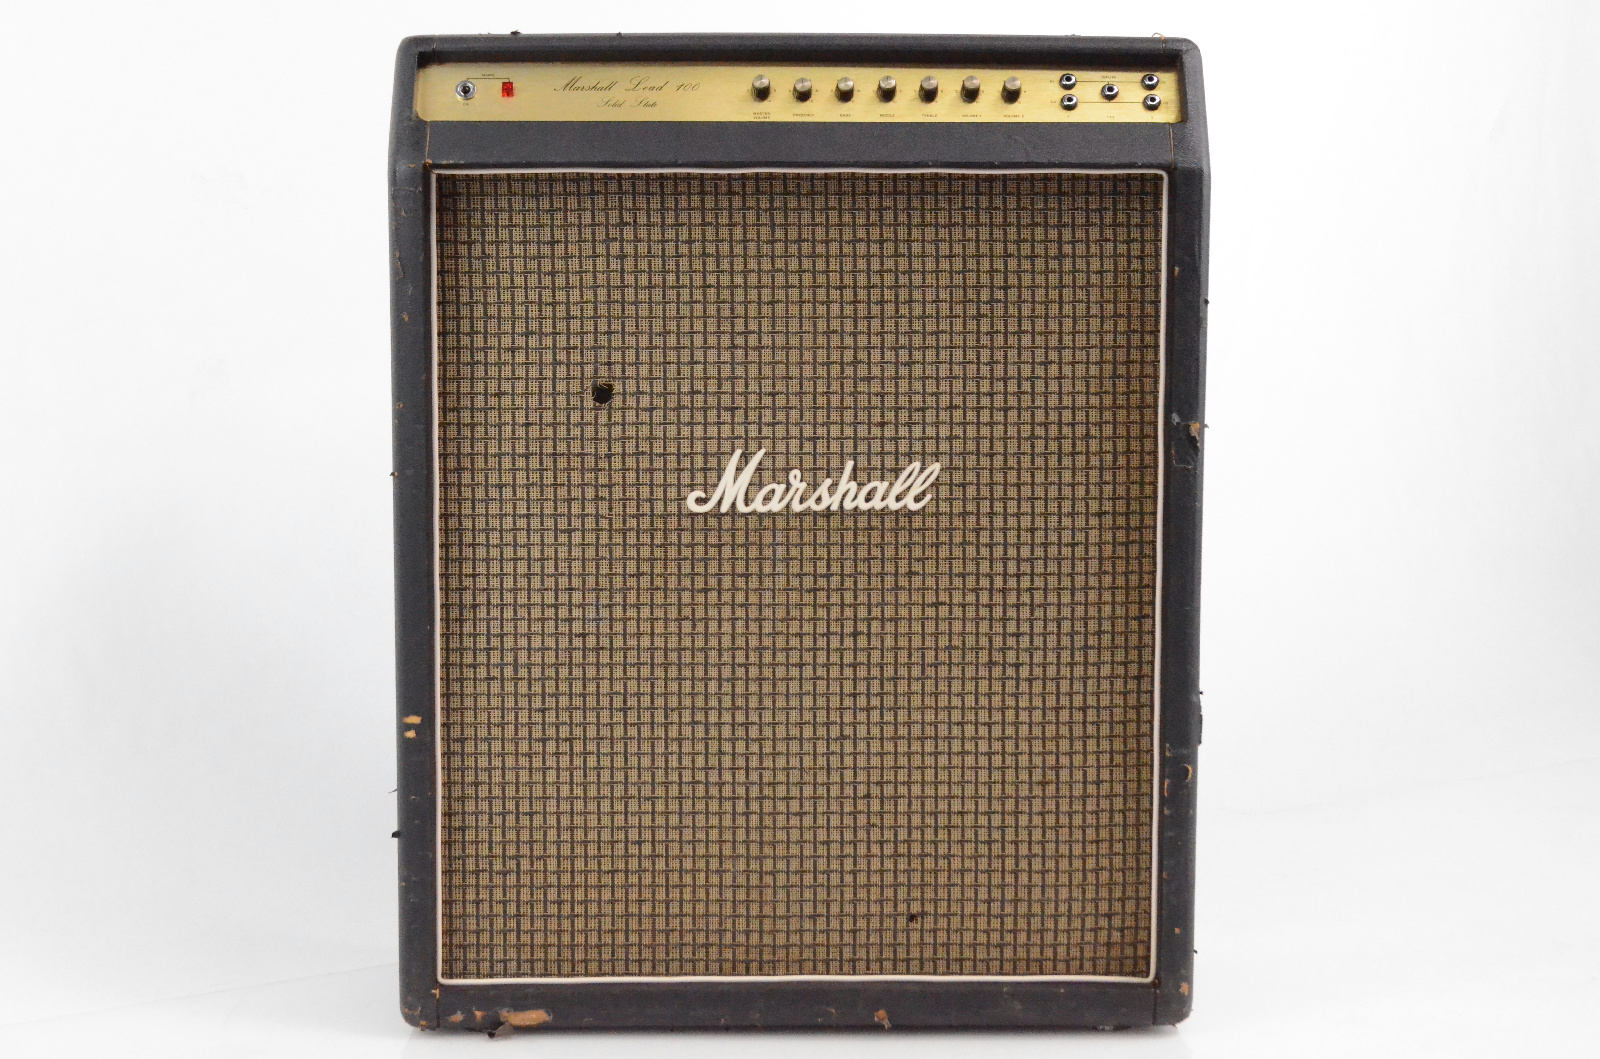 Marshall Lead 100 Solid State 4x12 Guitar Combo Amp Amplifier G12843 #32523